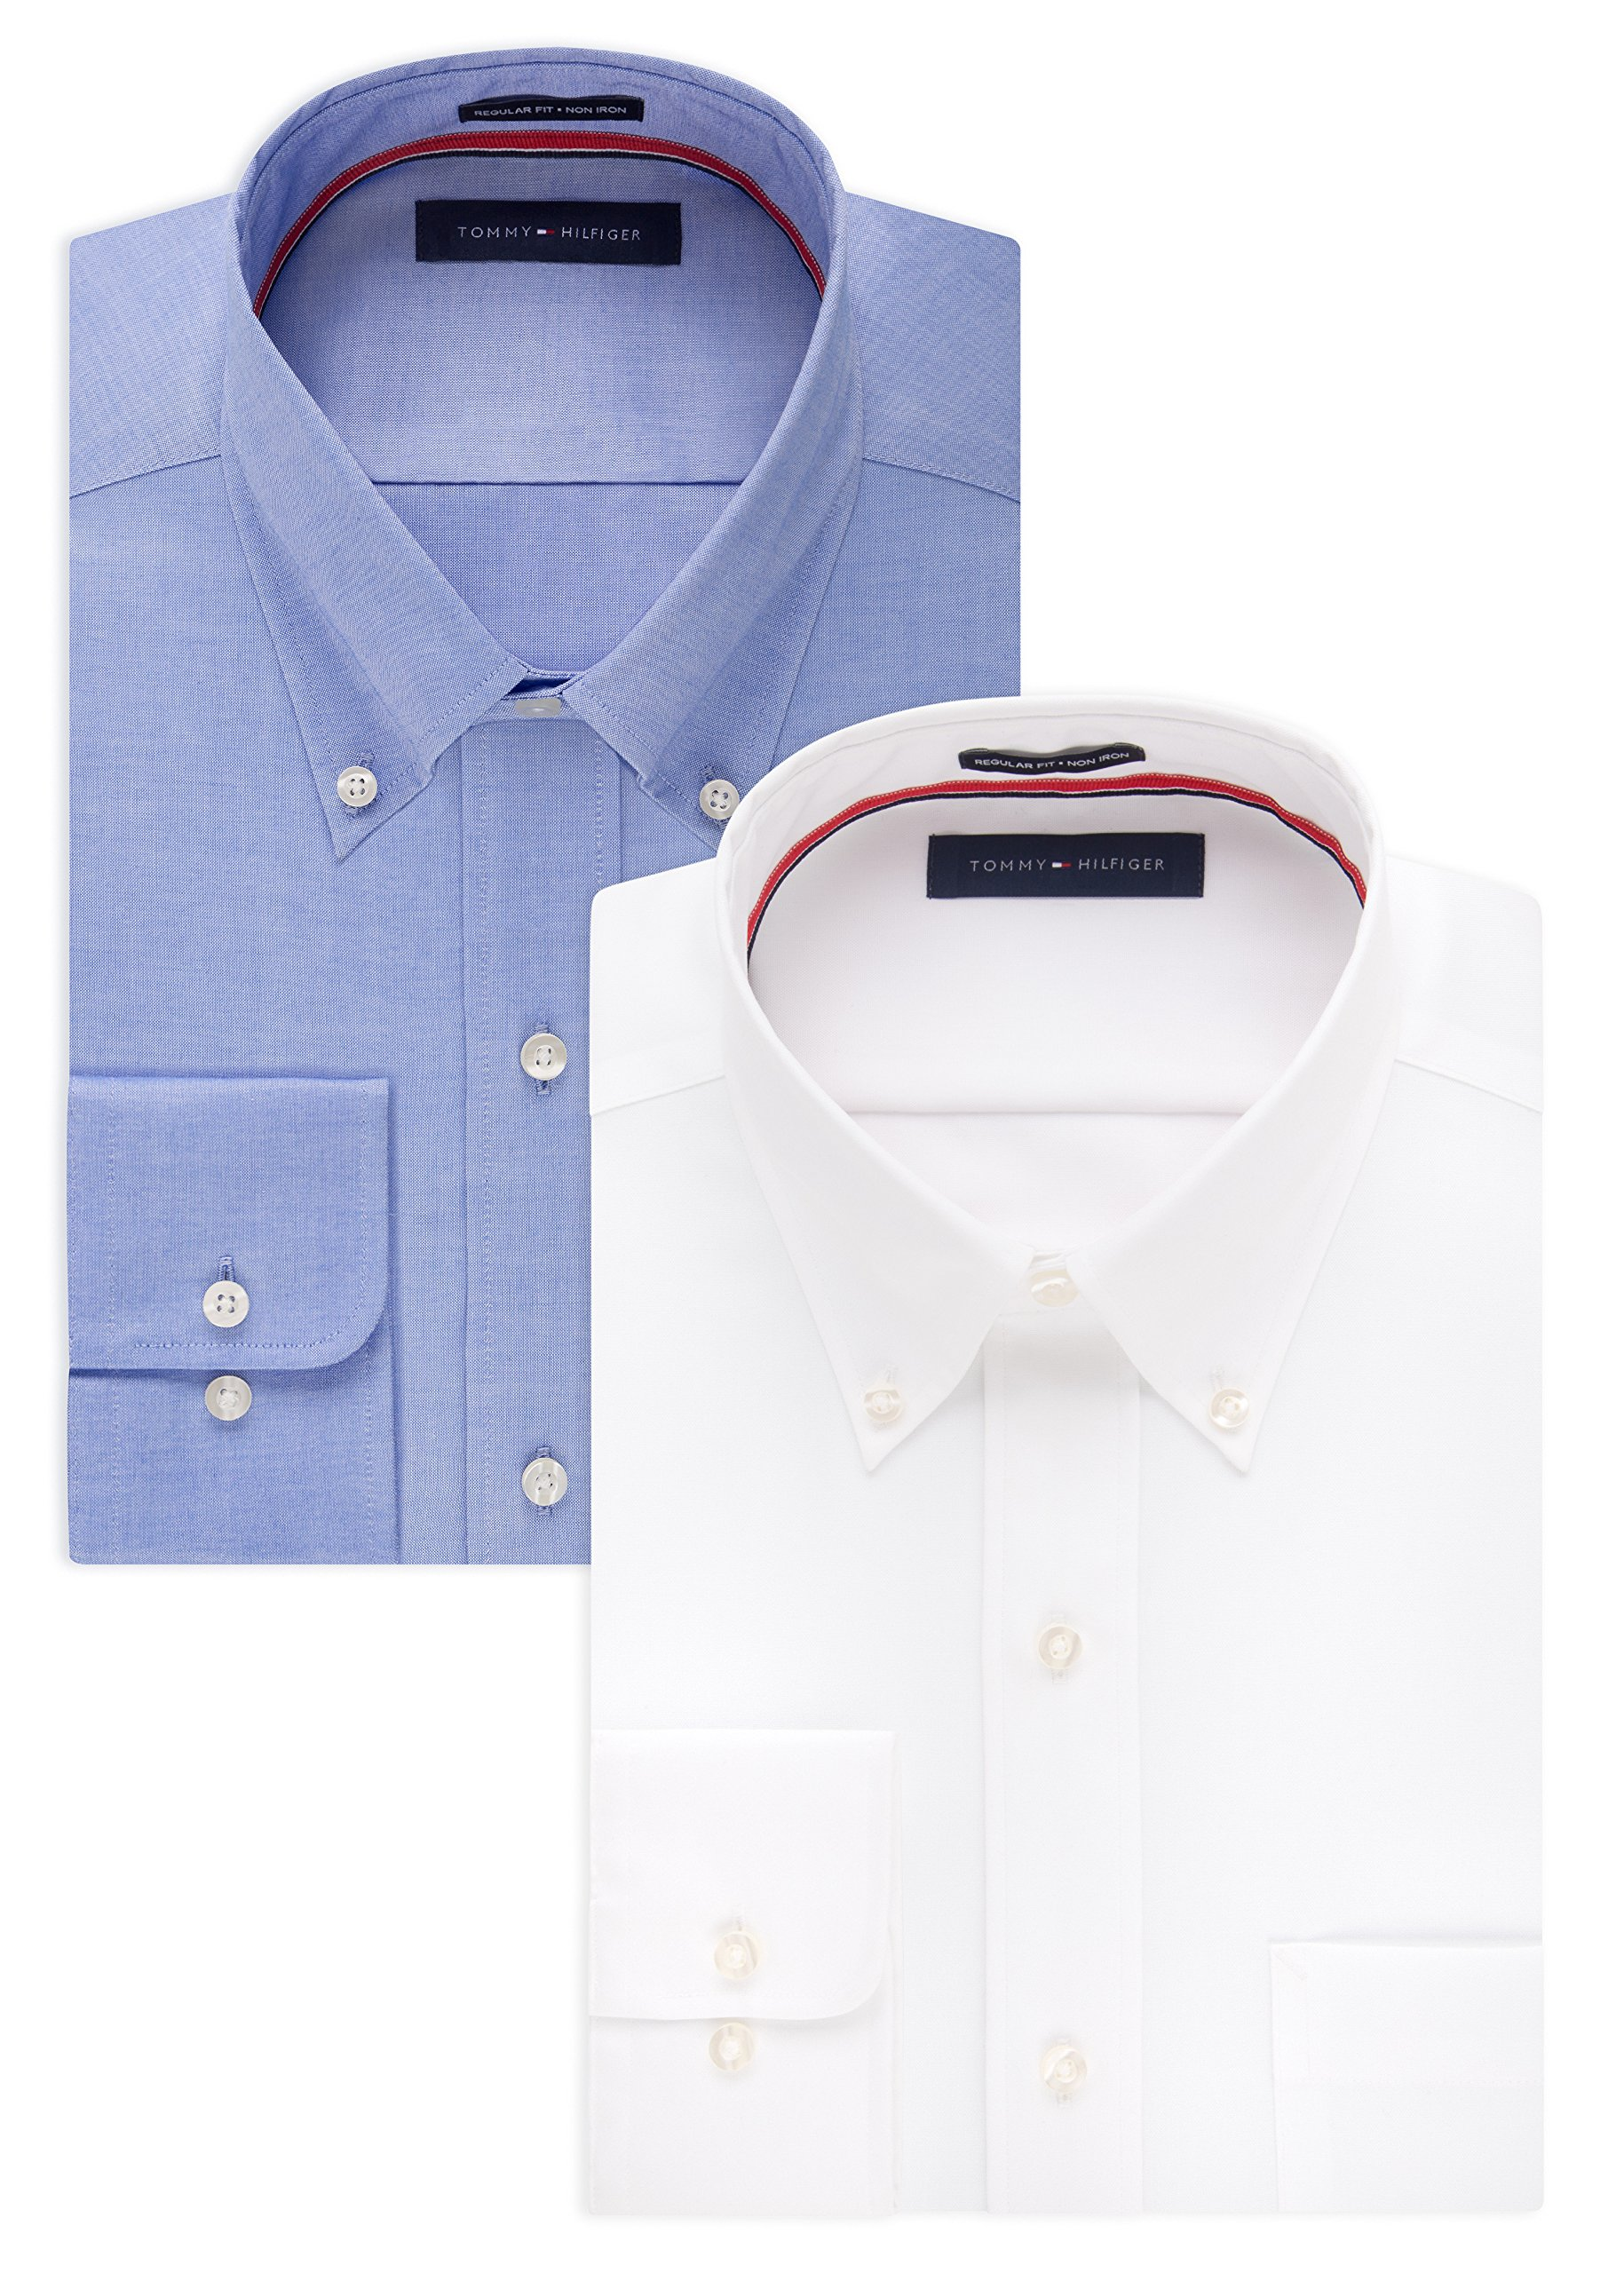 TOMMY HILFIGER Men's Non Iron Regular Fit Solid Button Down Collar Dress Shirt, White/Blue, 17.5'' Neck 34''-35'' Sleeve